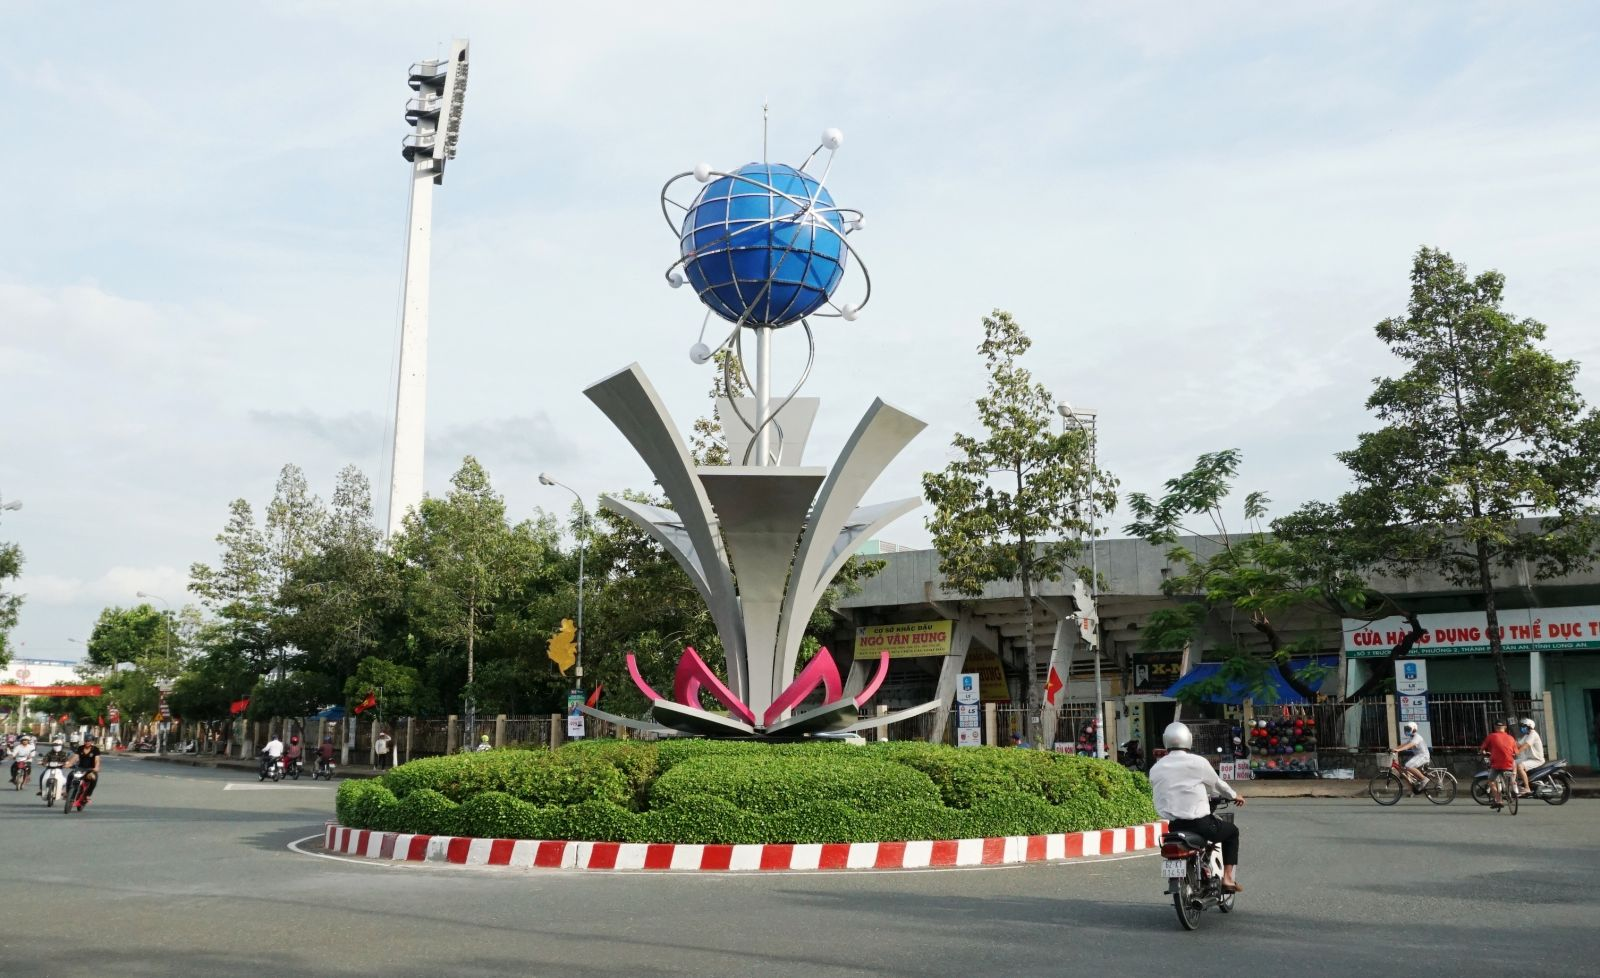 The Crystal Ball work with LED lighting at stadium roundabout